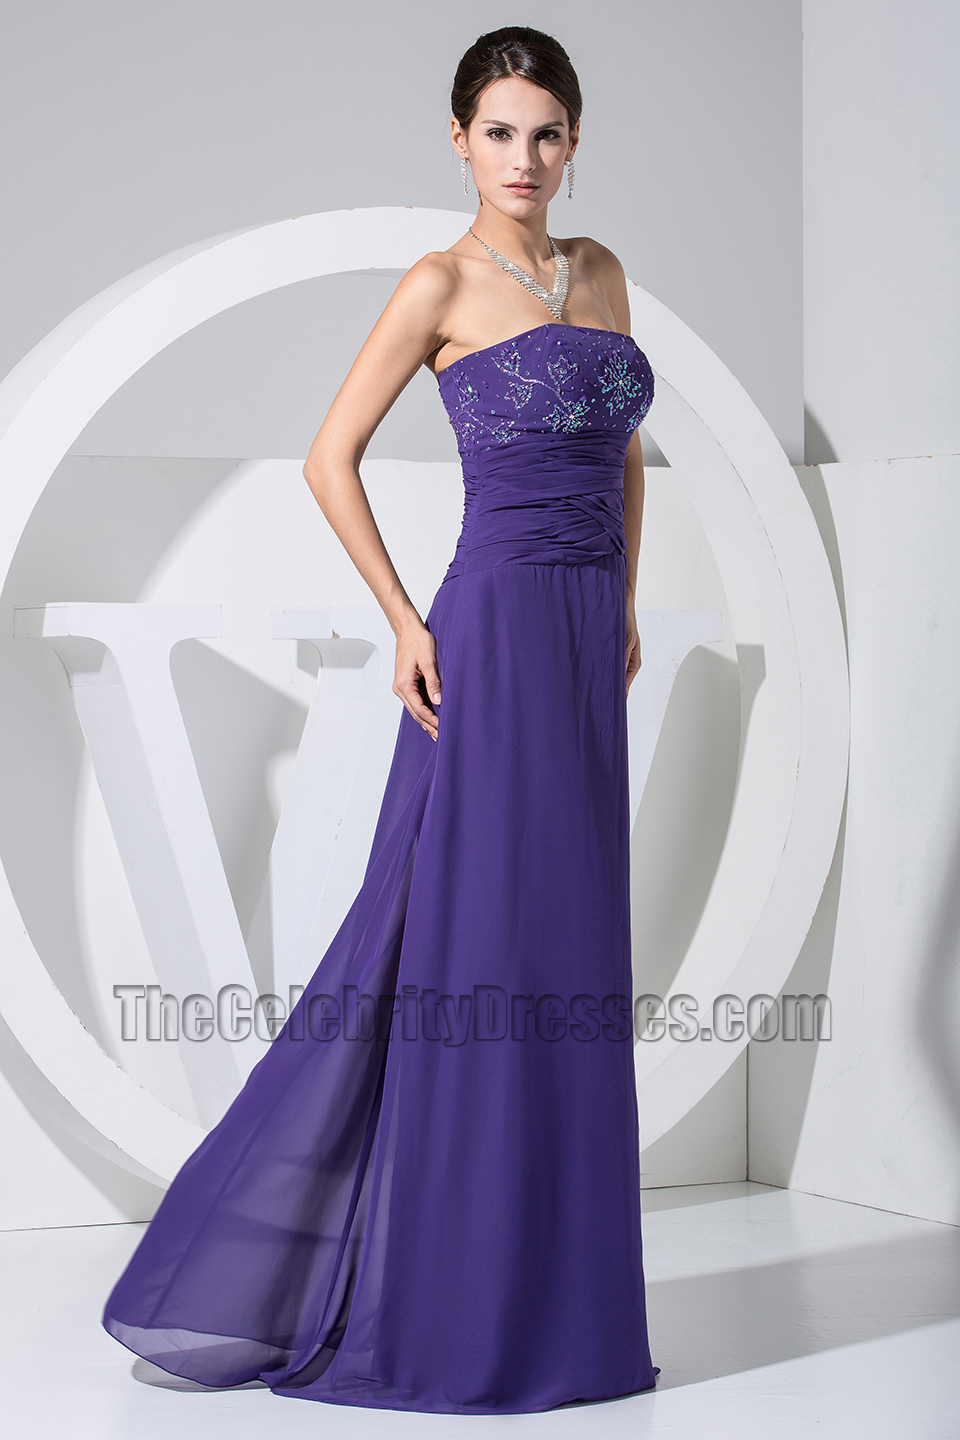 New Style Strapless A-Line Beaded Prom Dress Evening Gown ...